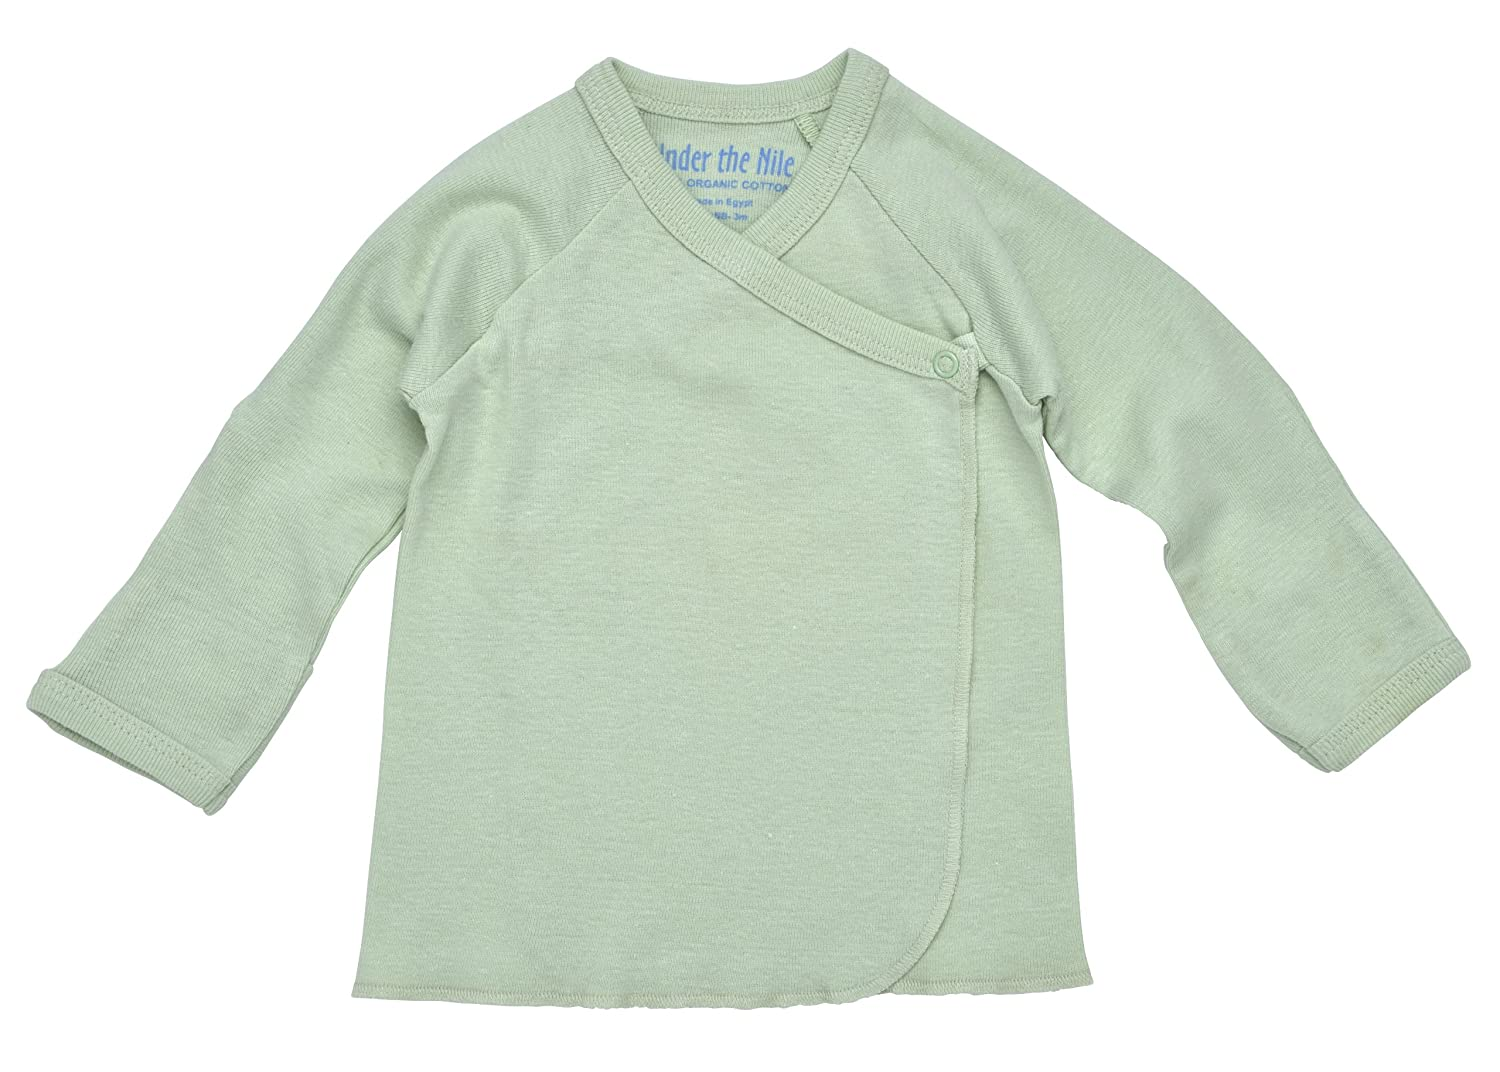 Under the Nile Organic Cotton Side Snap Baby Tee 3-6M, Pink